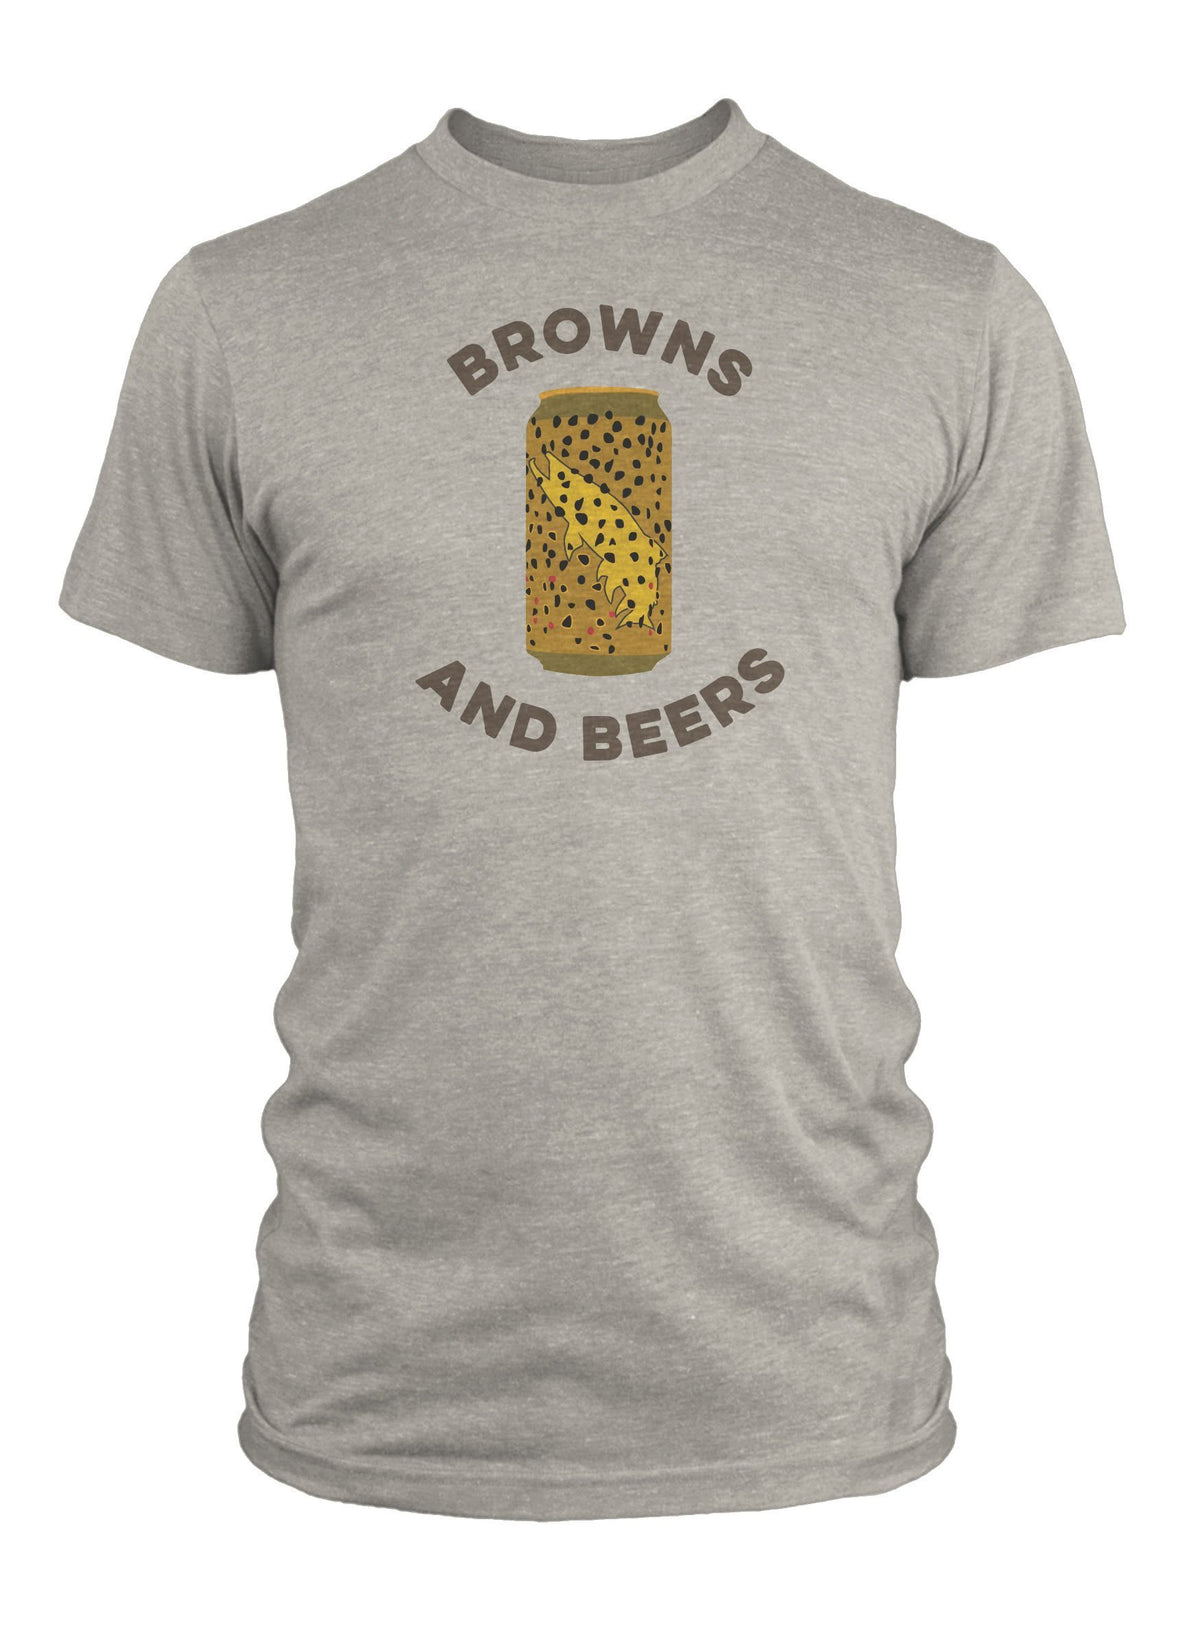 RepYourWater Browns and Beers SS Tee Shirt Front